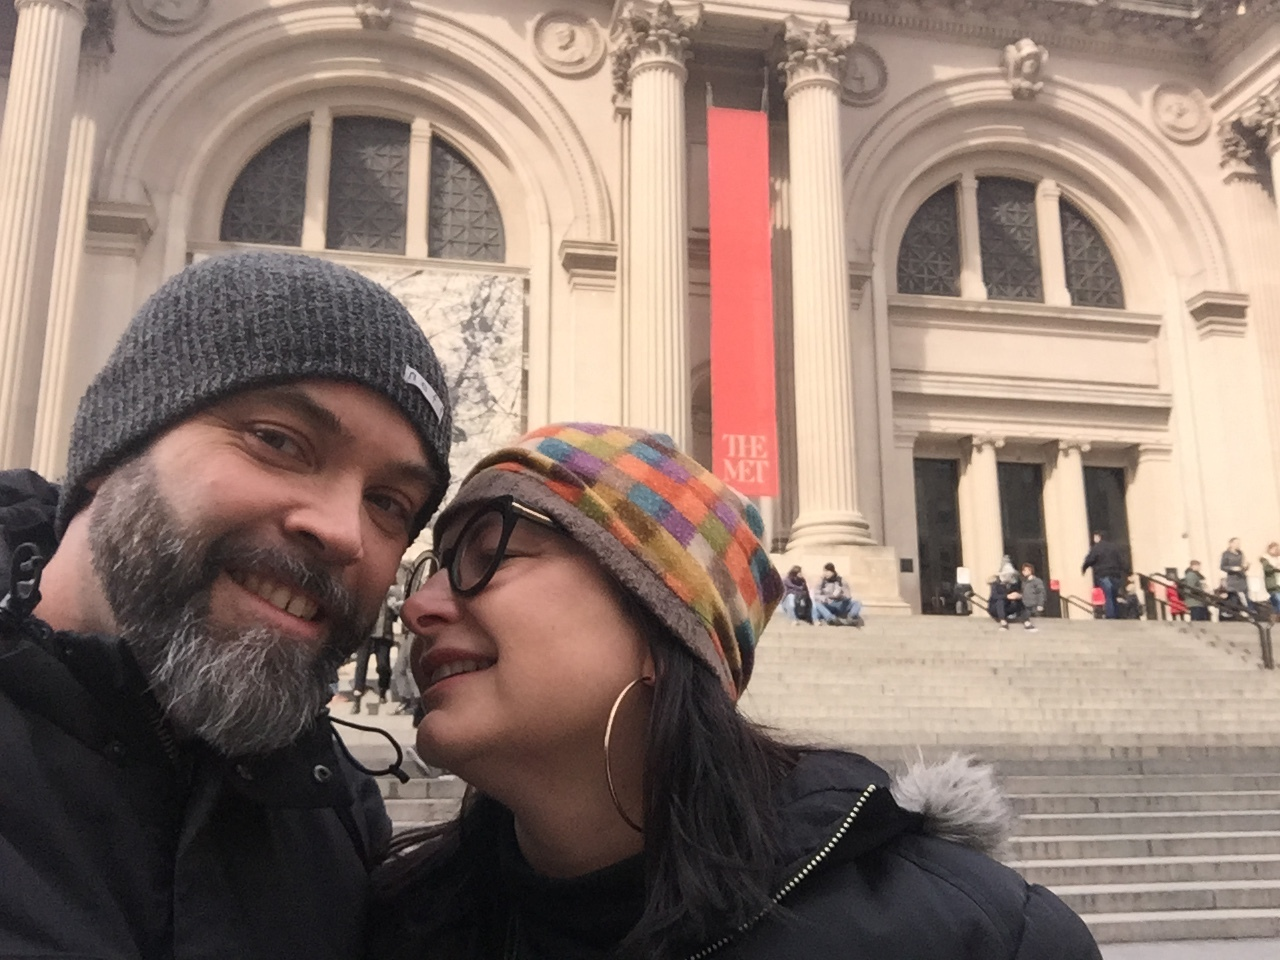 Us! In front of the MET. This place was so amazing. The Egyptian stuff! The paintings! And a da Vinci sketch!